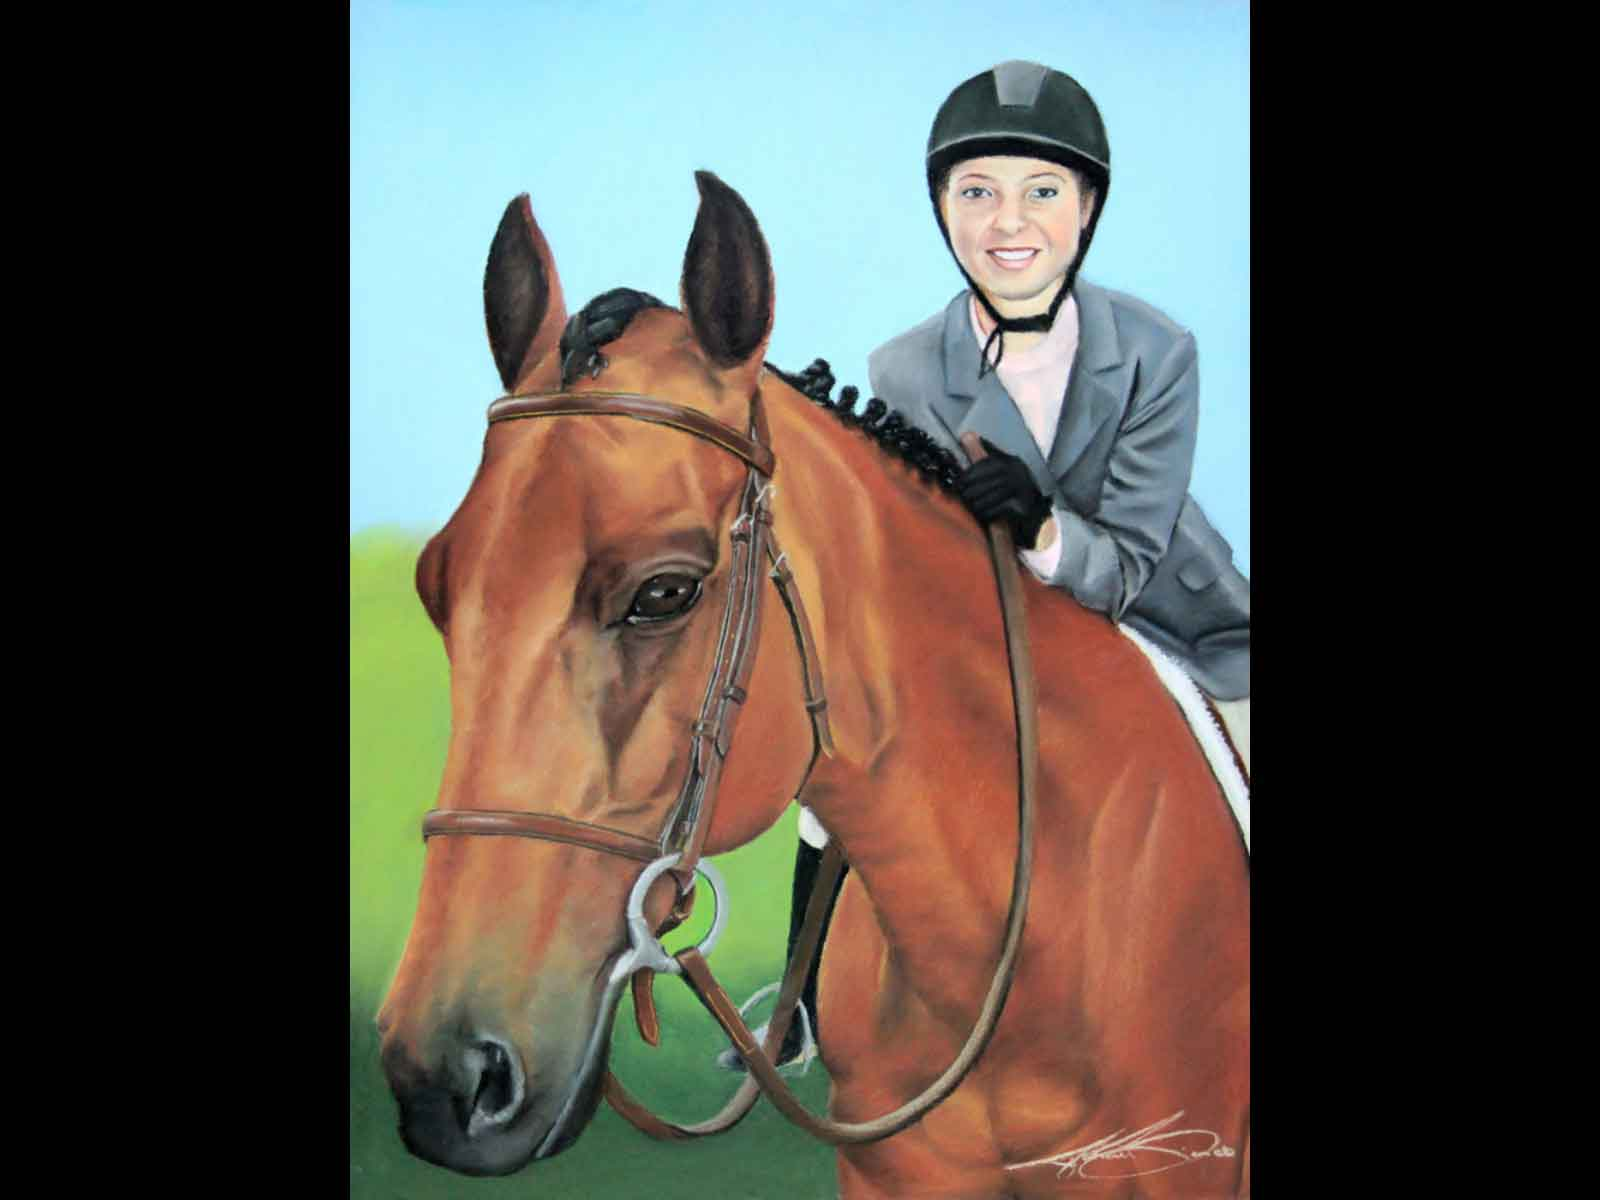 Emily Voss & Horse (After)